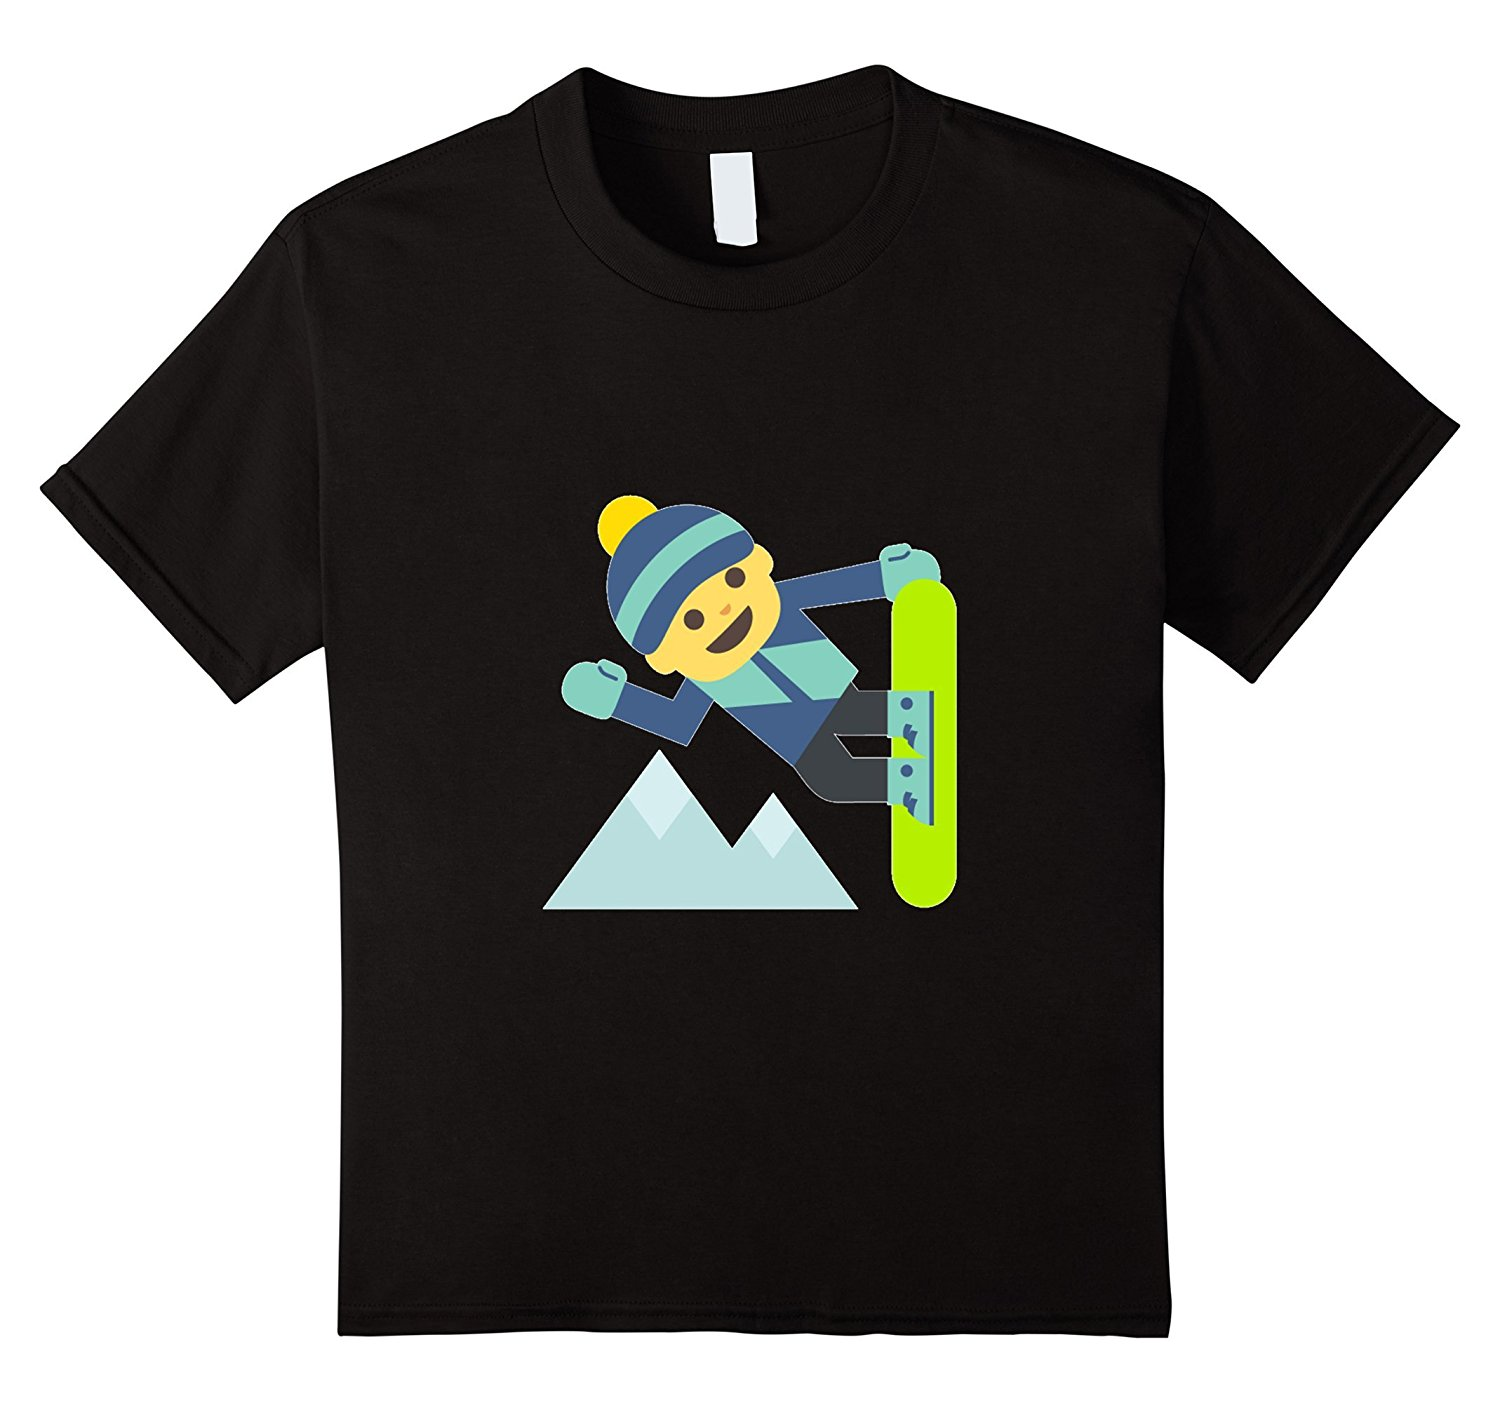 Snowboardings T-Shirt Skier Slope Winter Games Skateboard Basic Tops T Shirts 2018 Brand Clothes Slim Fit Printing